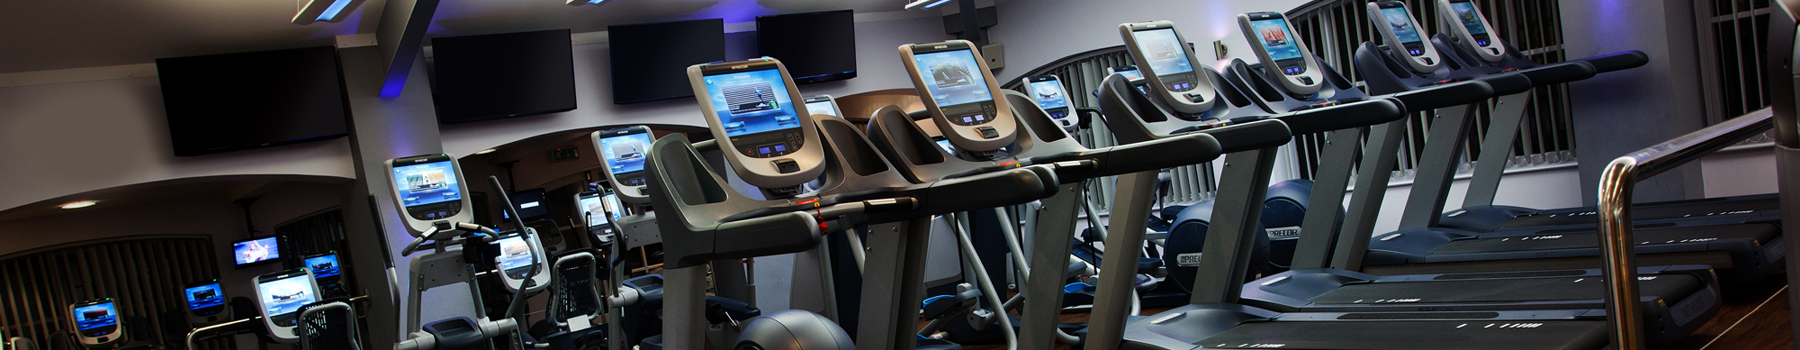 How to Get Fitness Club Members to Come Back